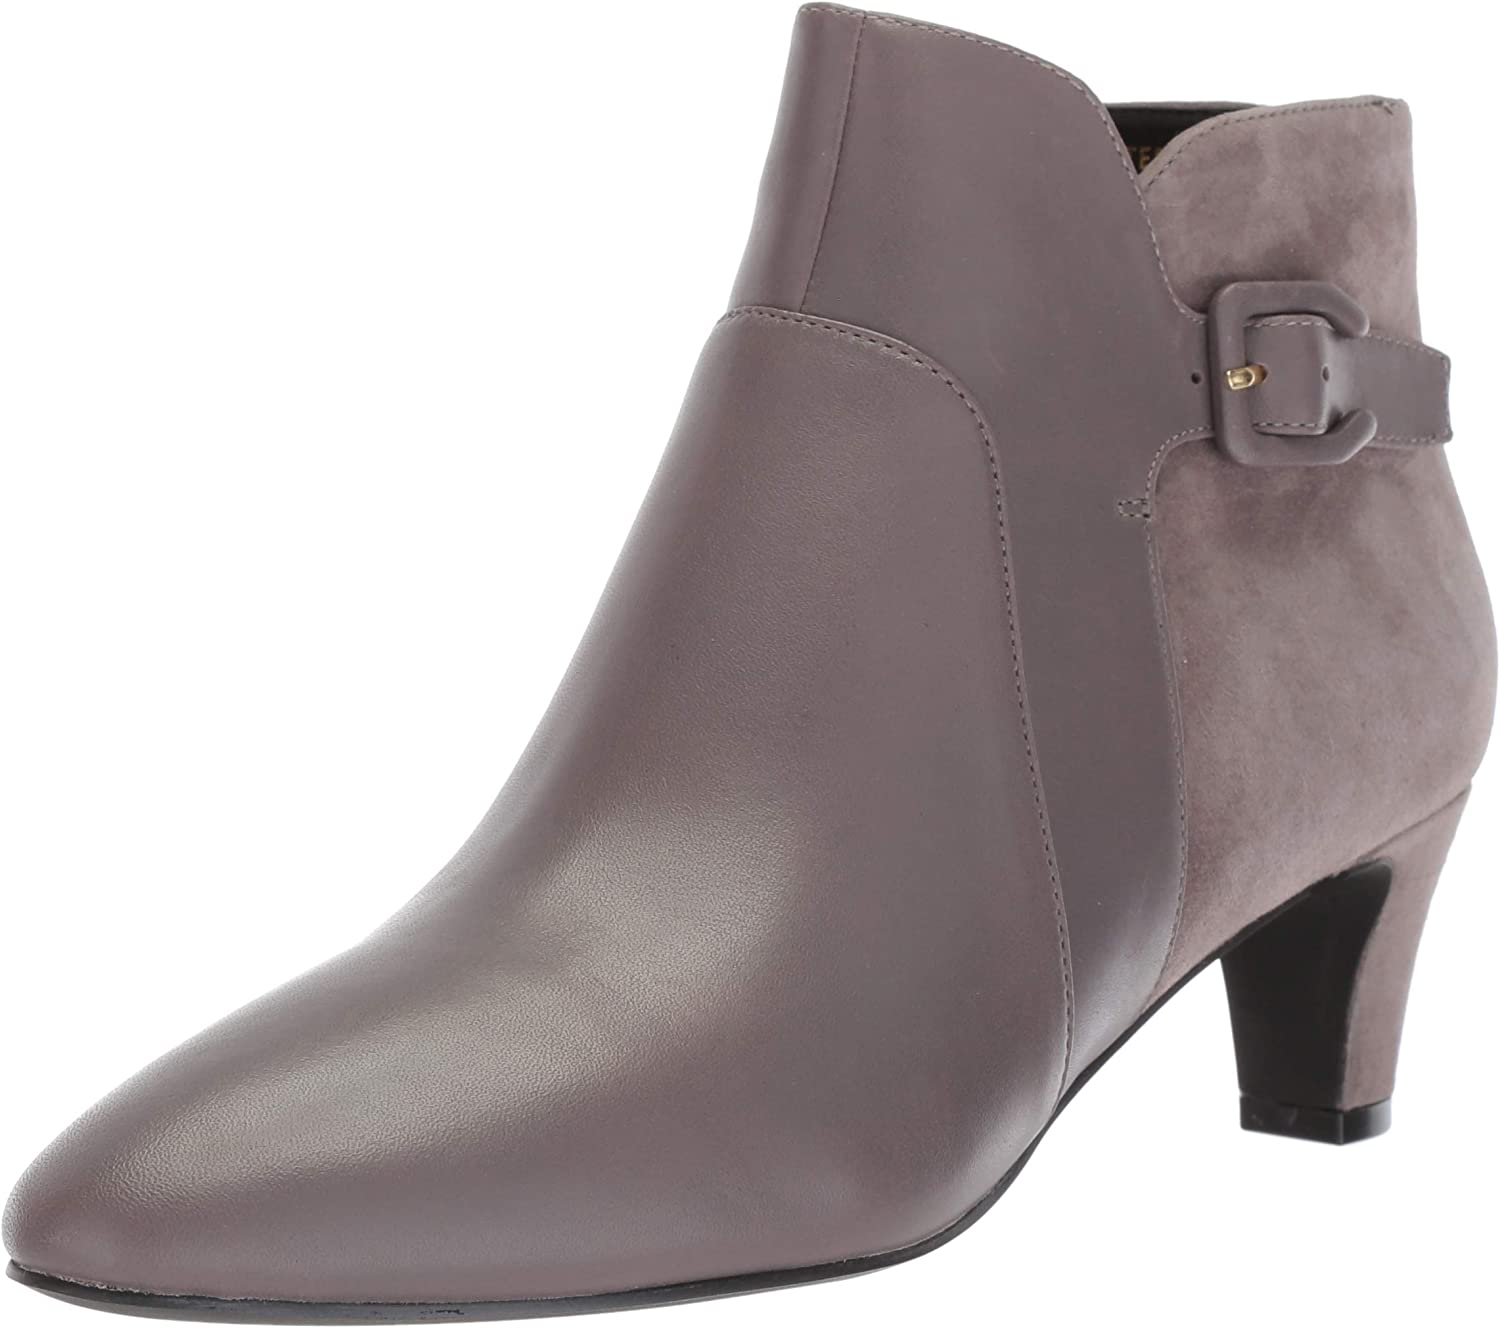 Cole Haan Womens Sylvia Bootie Boots